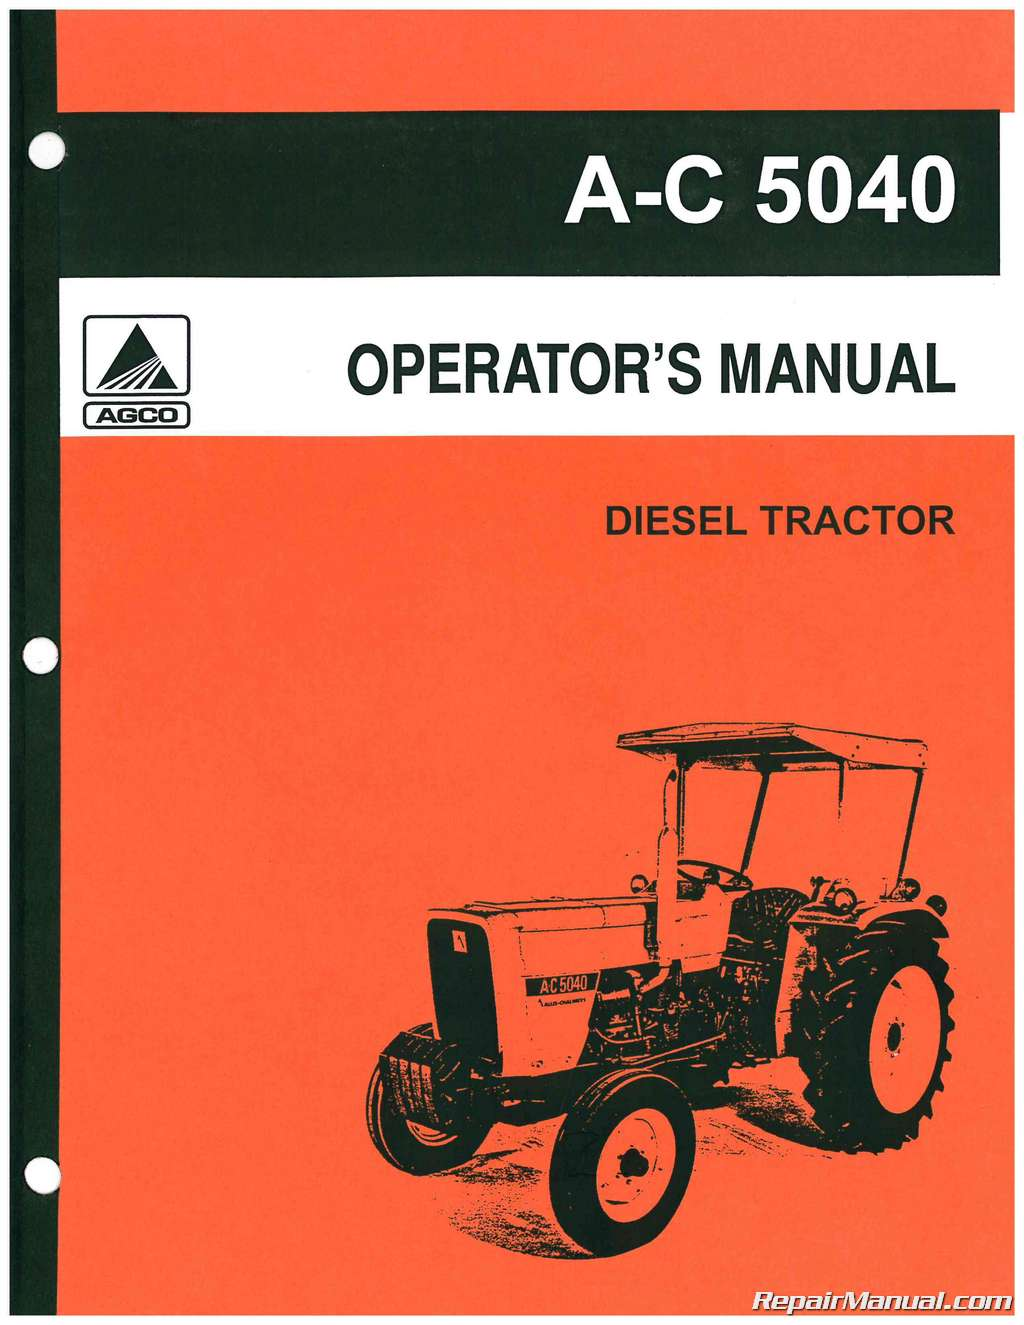 allis chalmers 5040 6 speed 9 speed trans operators manual rh repairmanual com 5040 Allis Chalmers Parts 5040 Allis Chalmers Parts